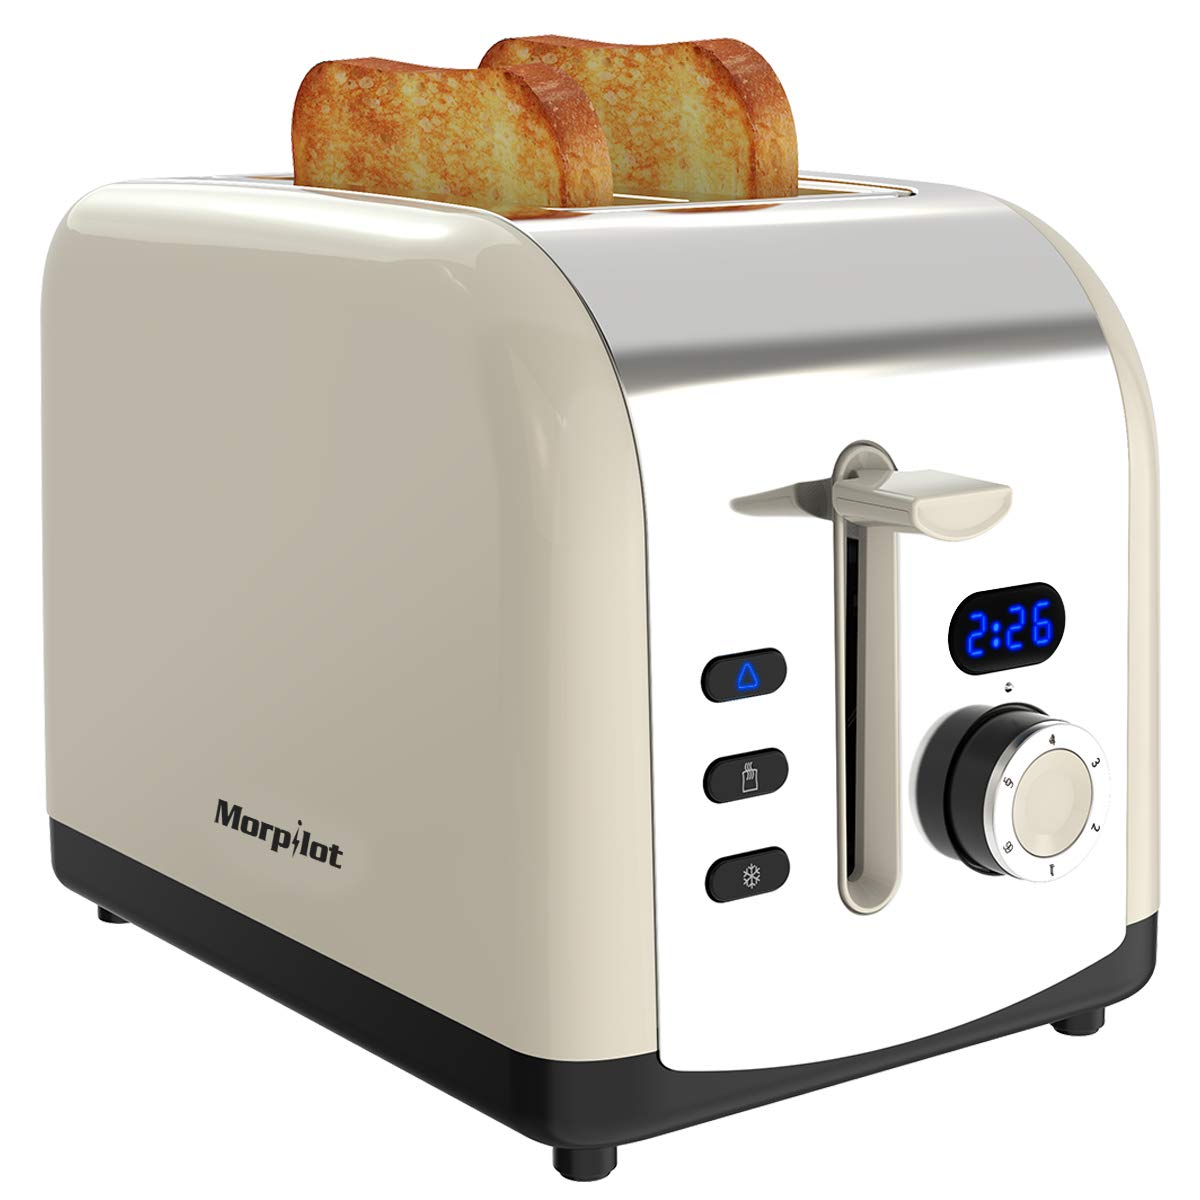 Best toaster I've ever had